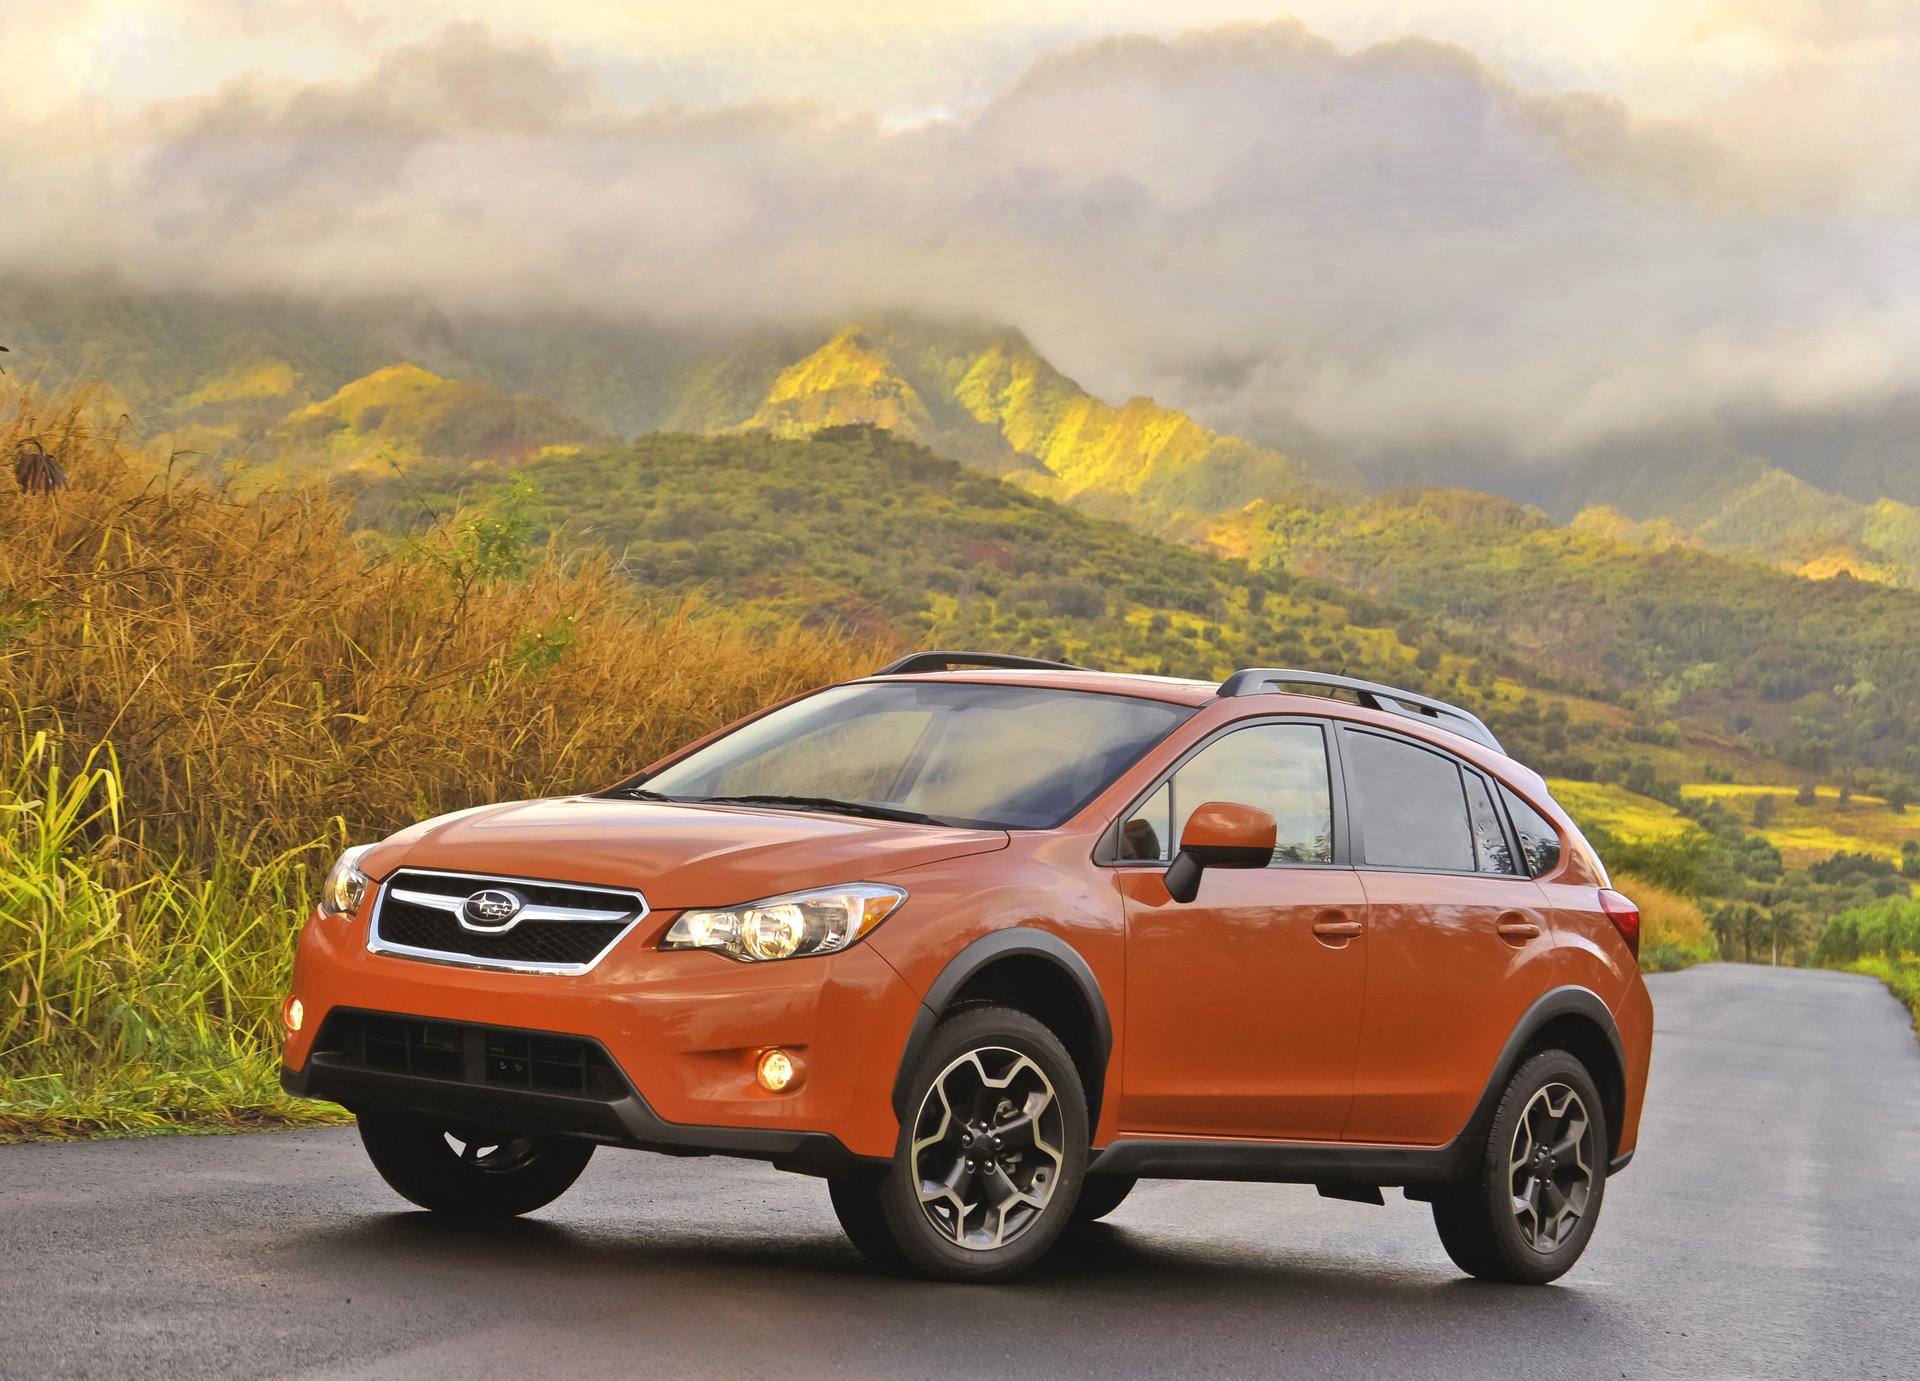 new and used subaru xv crosstrek prices photos reviews specs the car connection. Black Bedroom Furniture Sets. Home Design Ideas